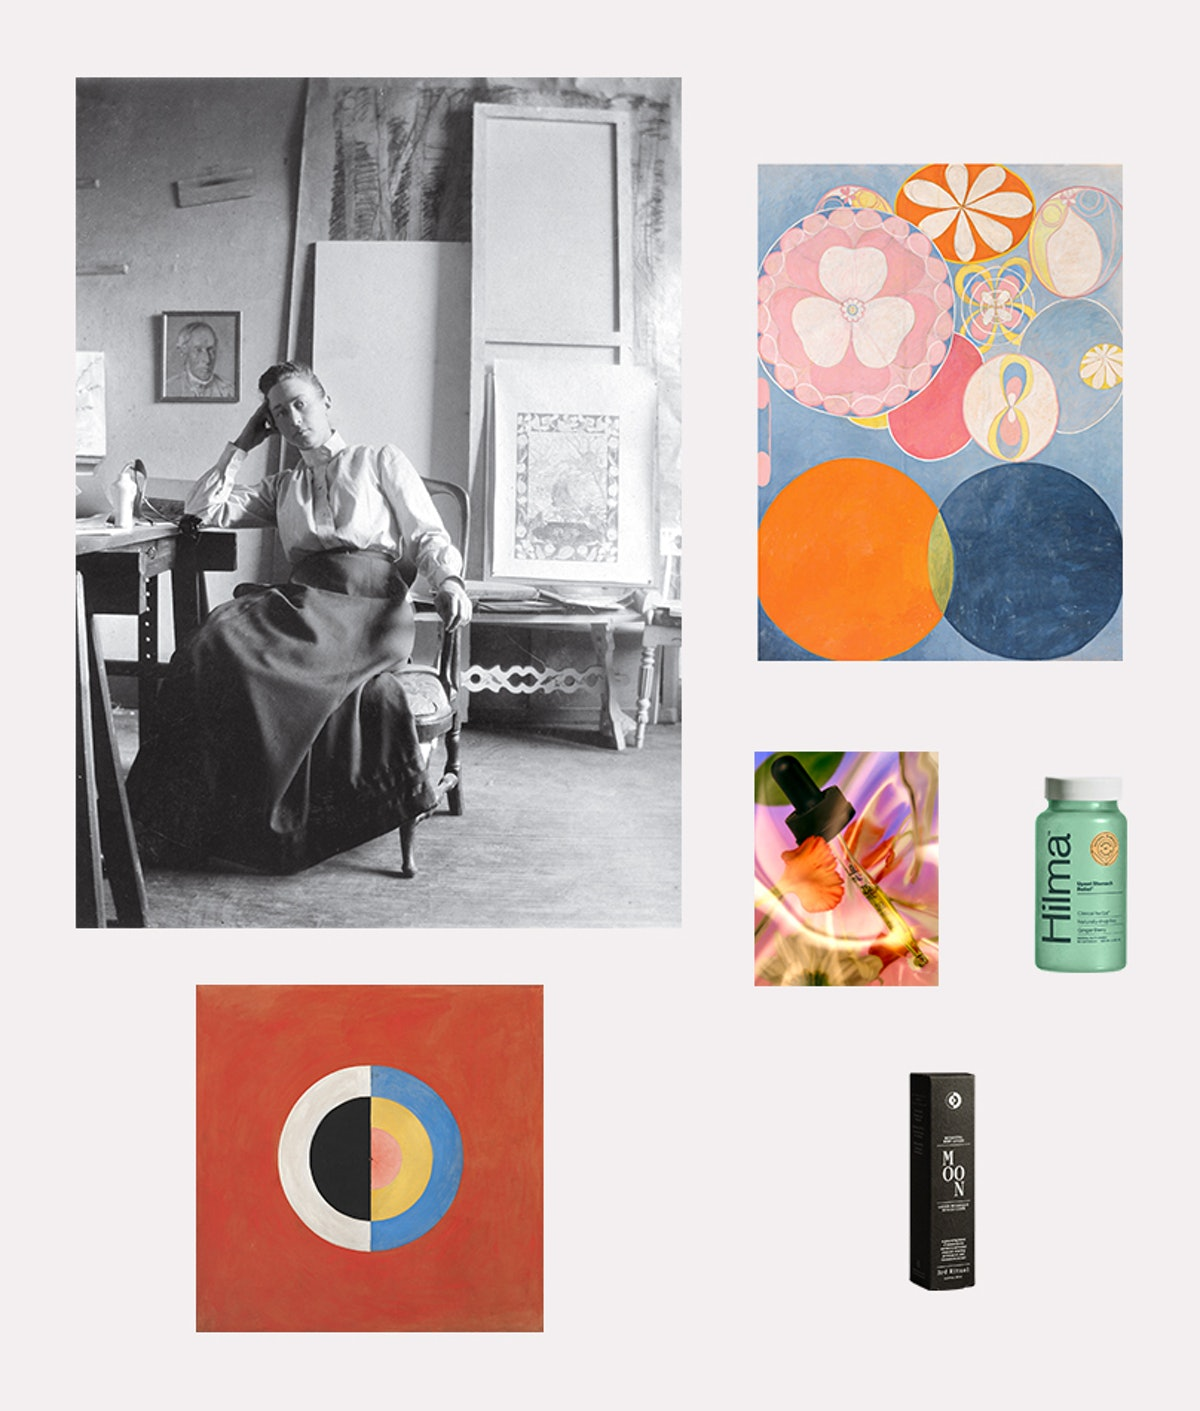 """Clockwise from top left: Hilma af Klint in her studio; Klint's """"Group IV, No. 2. The Ten Largest, Ch..."""